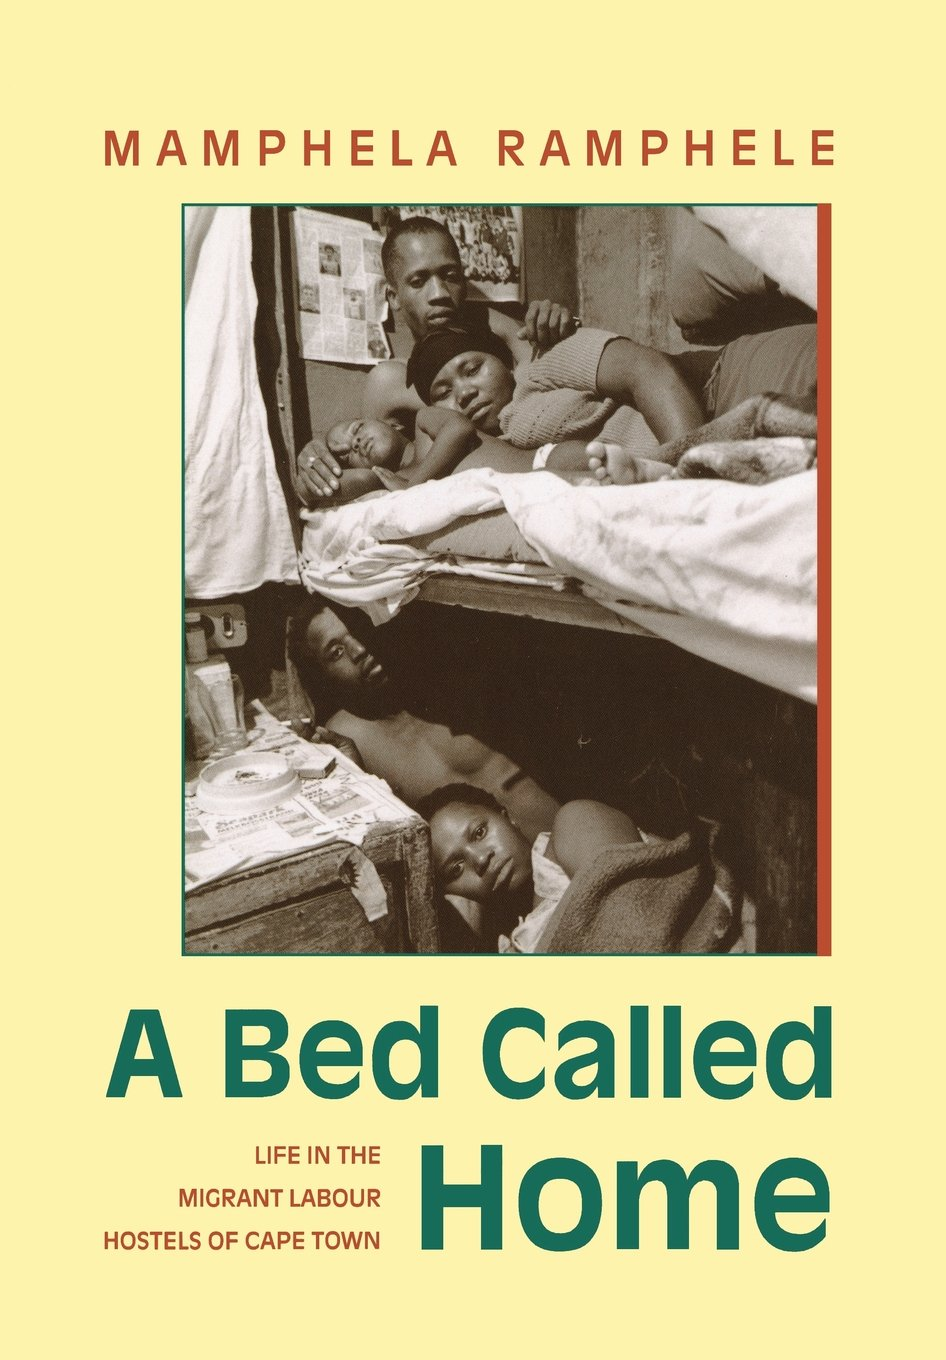 A Bed Called Home - Life In The Migrant Labour Hostels Of Cape Town (1993)